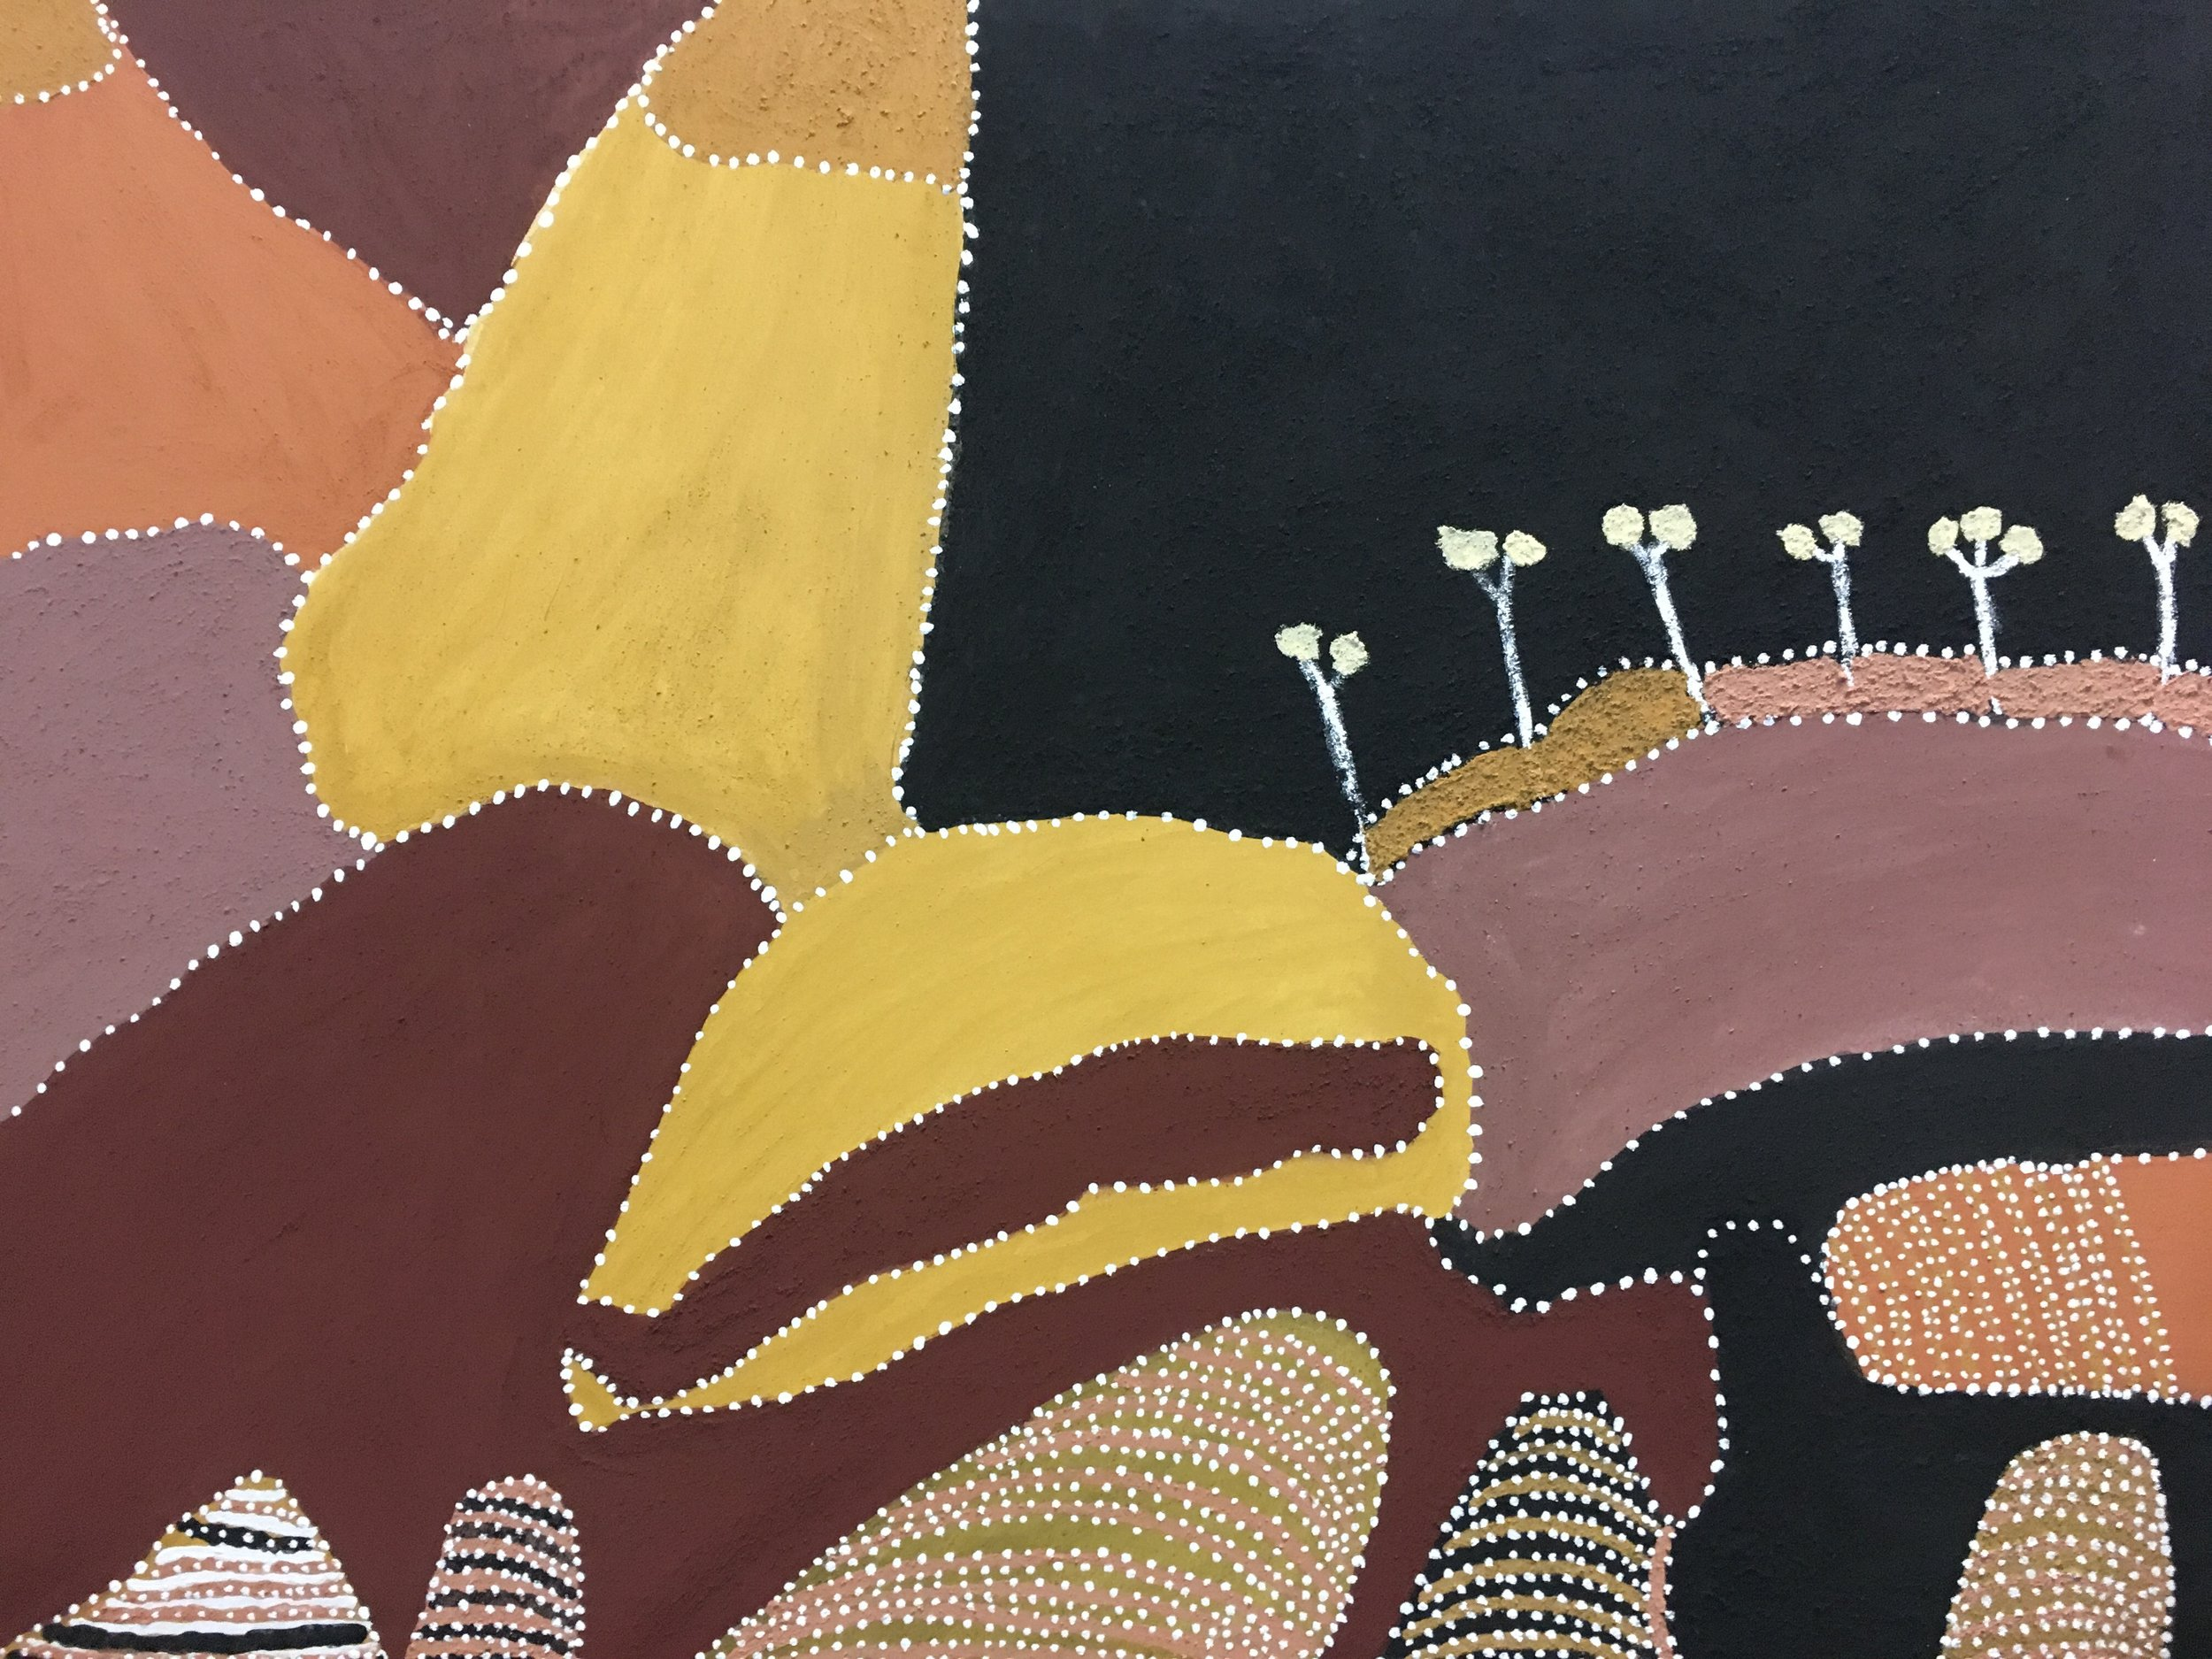 Patrick Mung Mung, Ngarrgooroon.  2010. Natural ochre and pigment on canvas. 90 x 120 cm  $7,200 SOLD